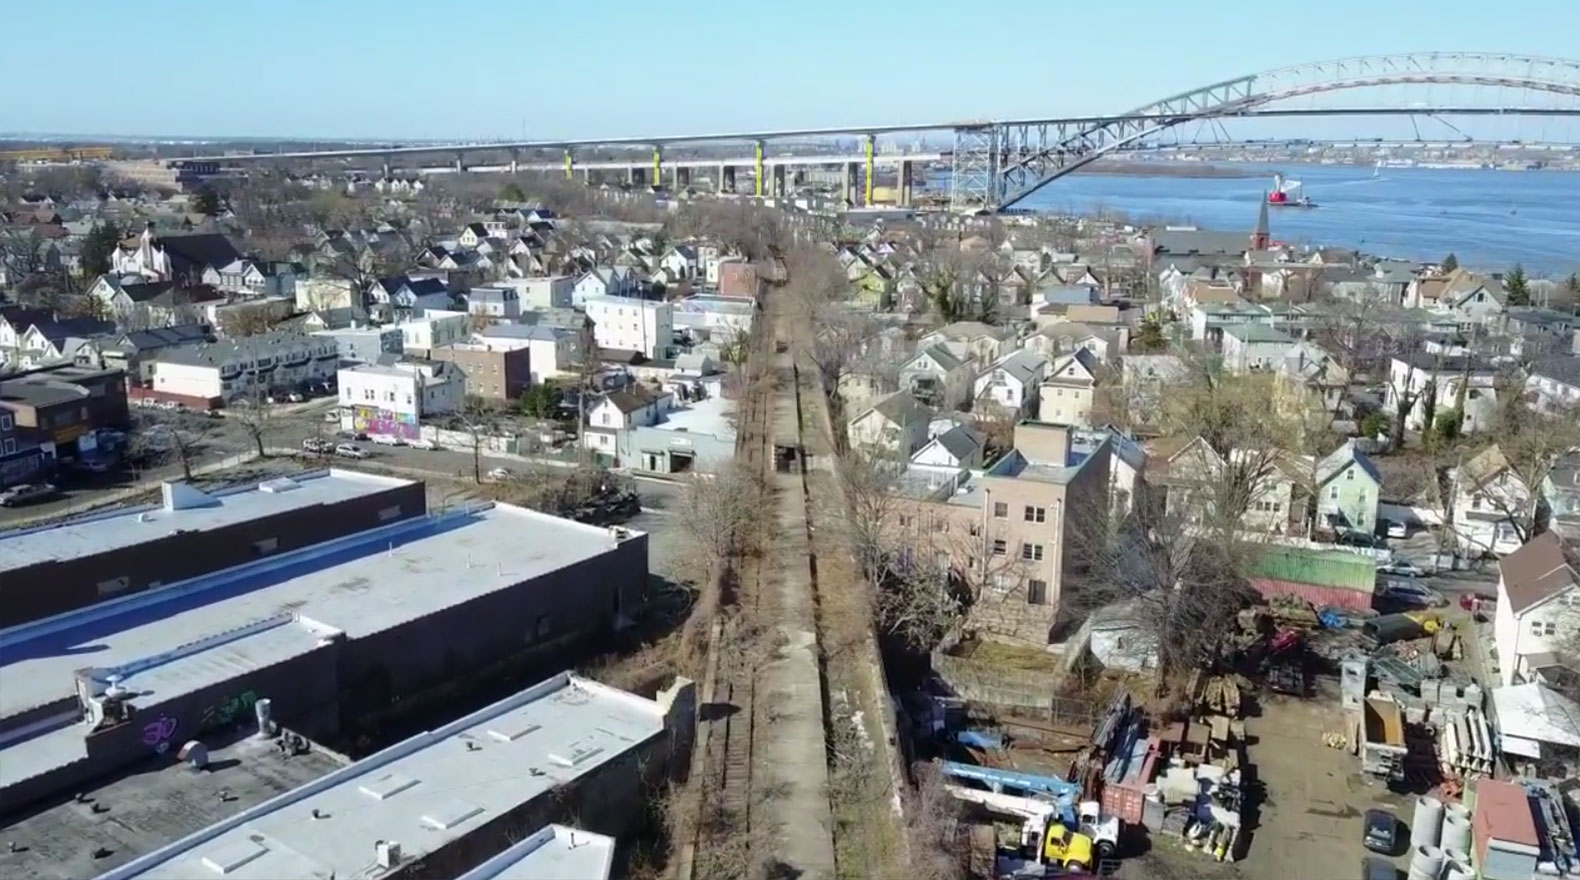 Staten Island is seeking proposals for a High Line park of its own